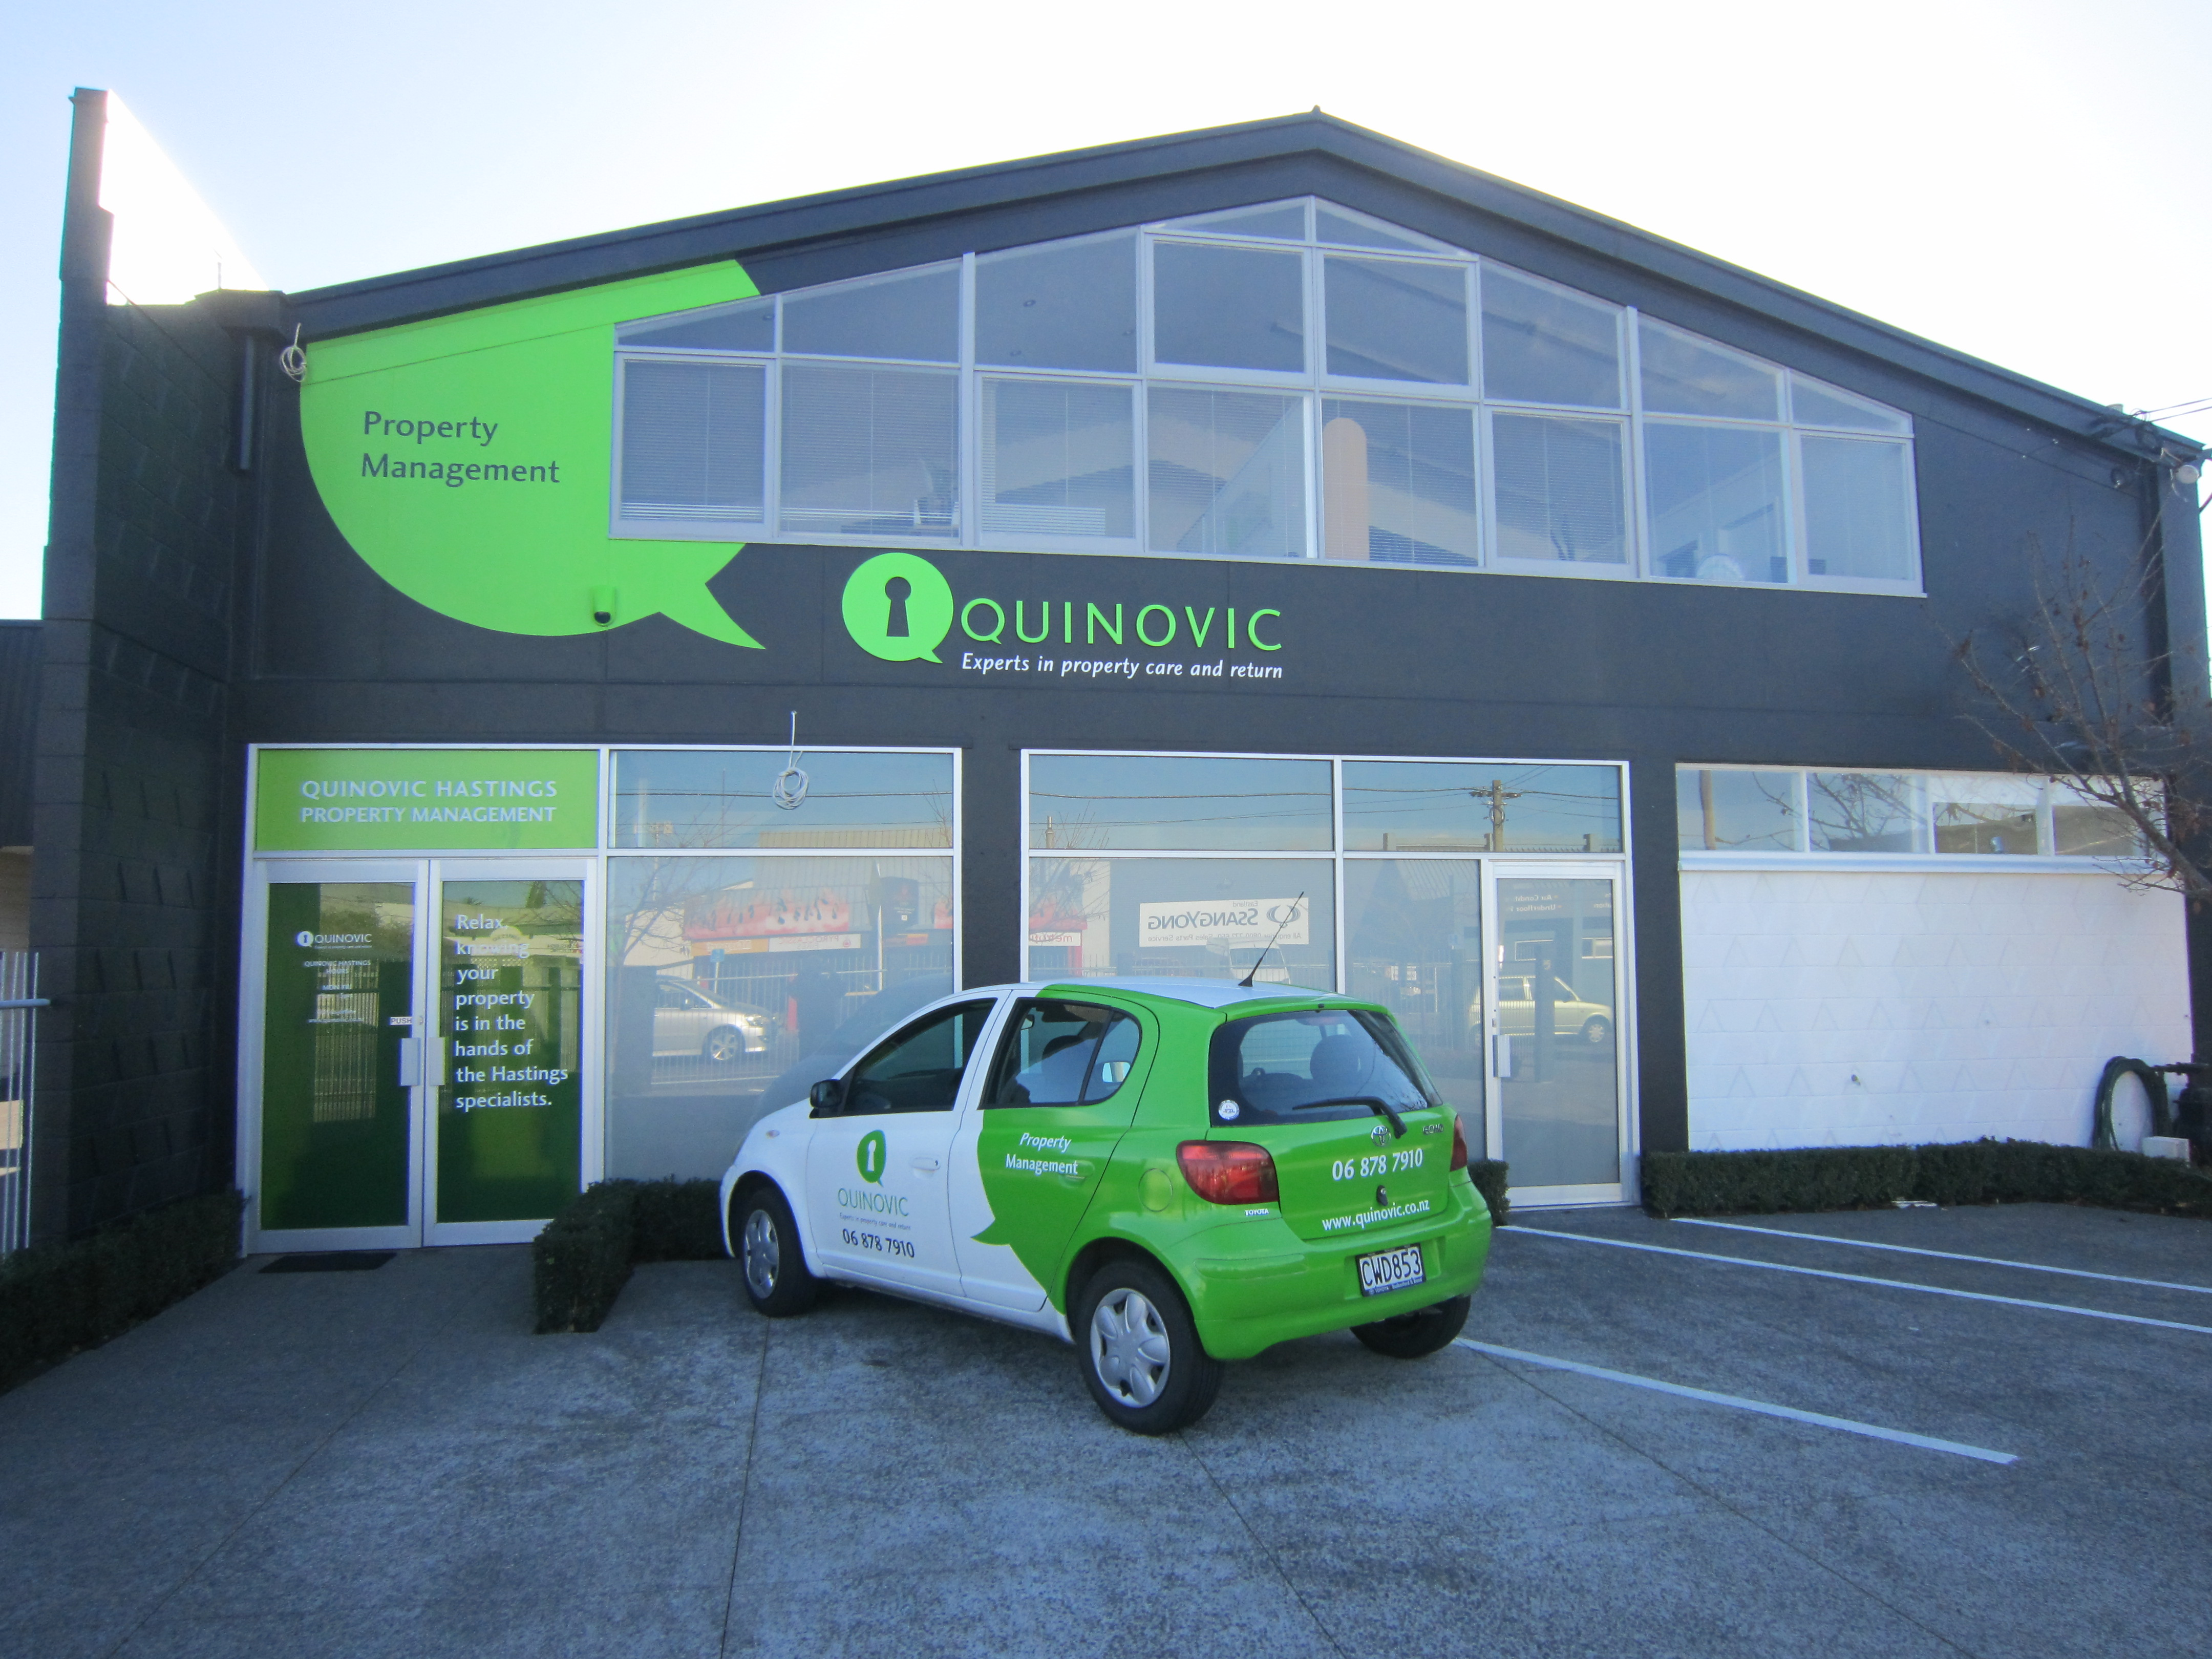 Quinovic Property Management - Hastings, Hawkes Bay